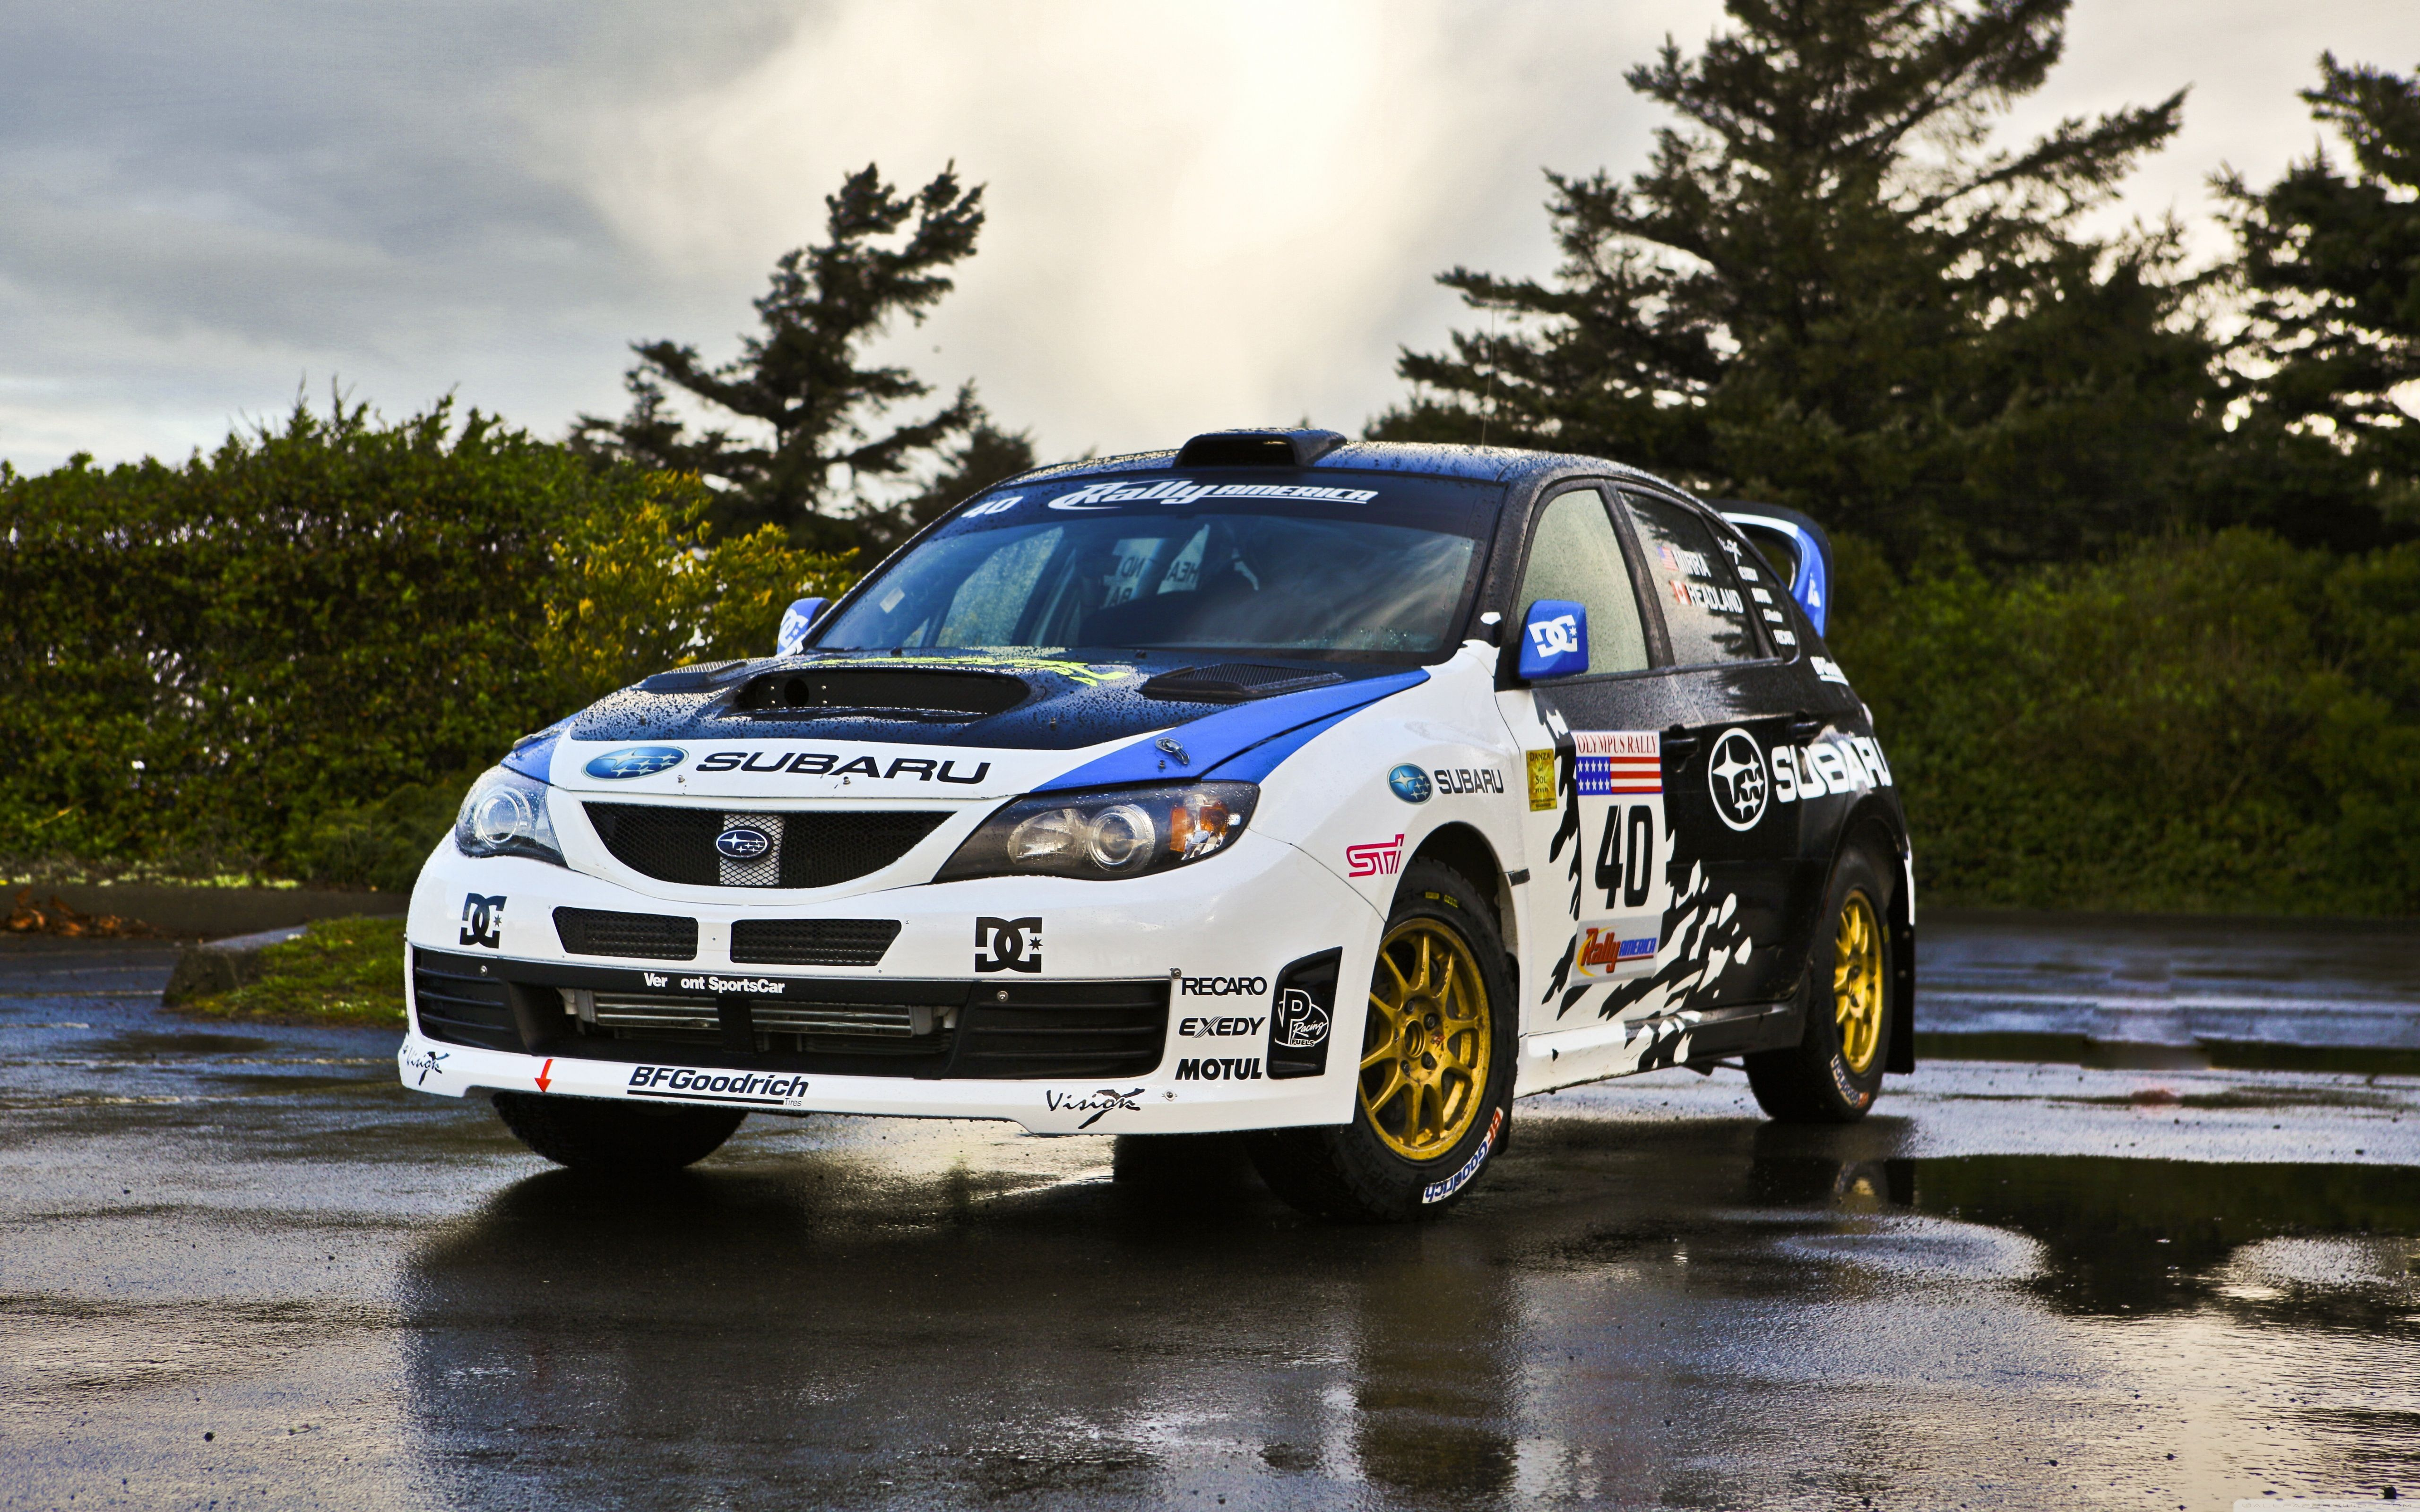 Subaru Rally Wallpaper wallpapers 2020 (With images